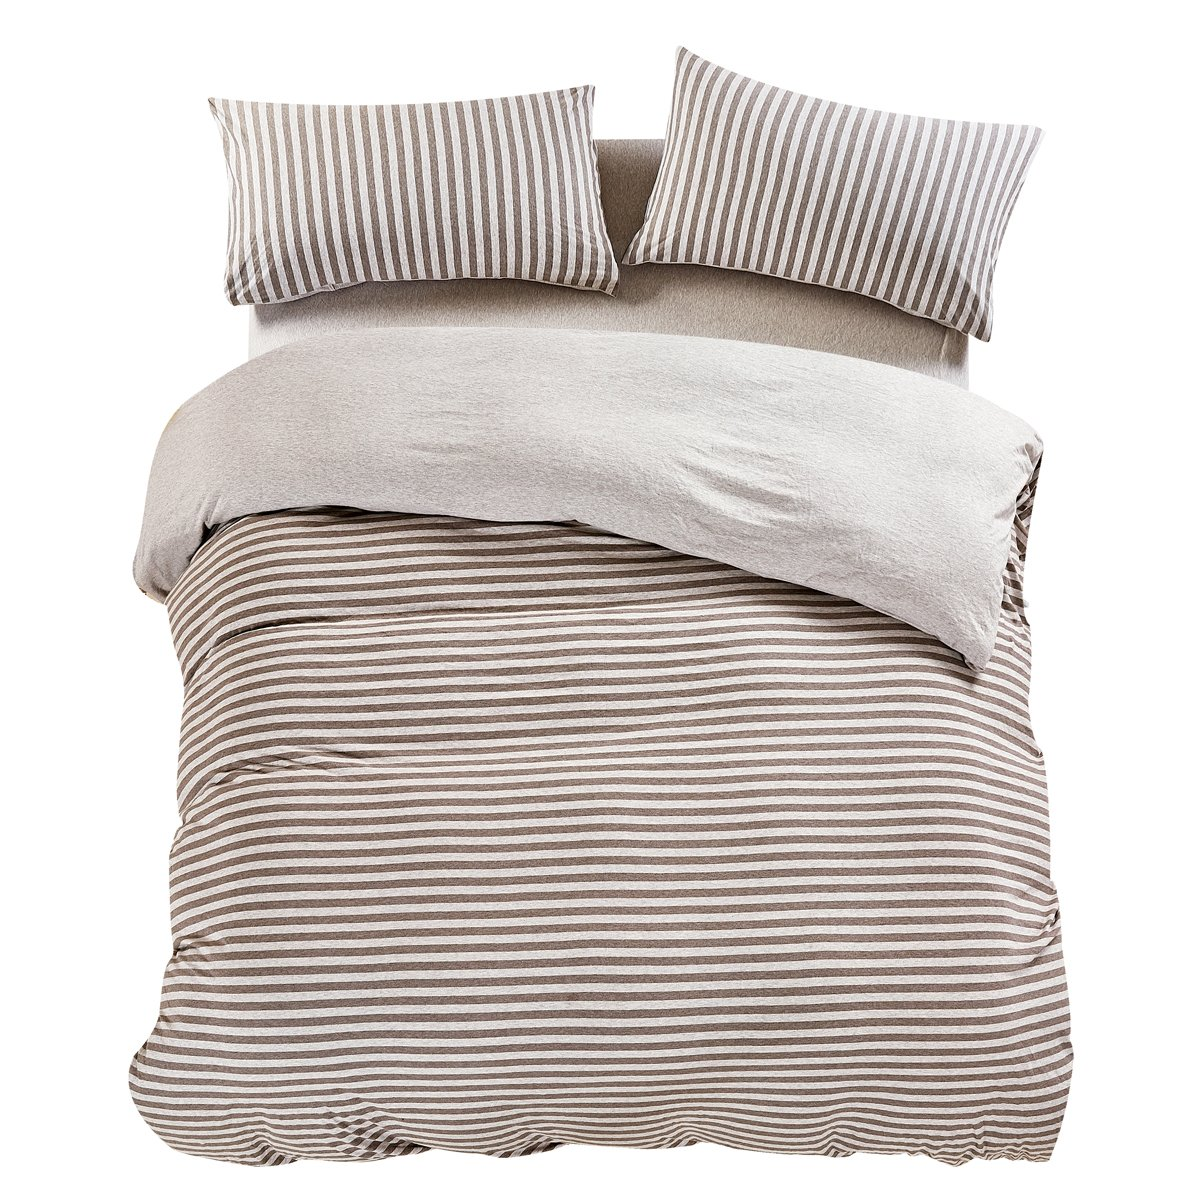 PURE ERA Jersey Knit Cotton Home Bedding Duvet Cover Sets Striped Comforter Cover and Pillow Shams Soft Comfy Blue Grey Queen Size PE-18B-Q